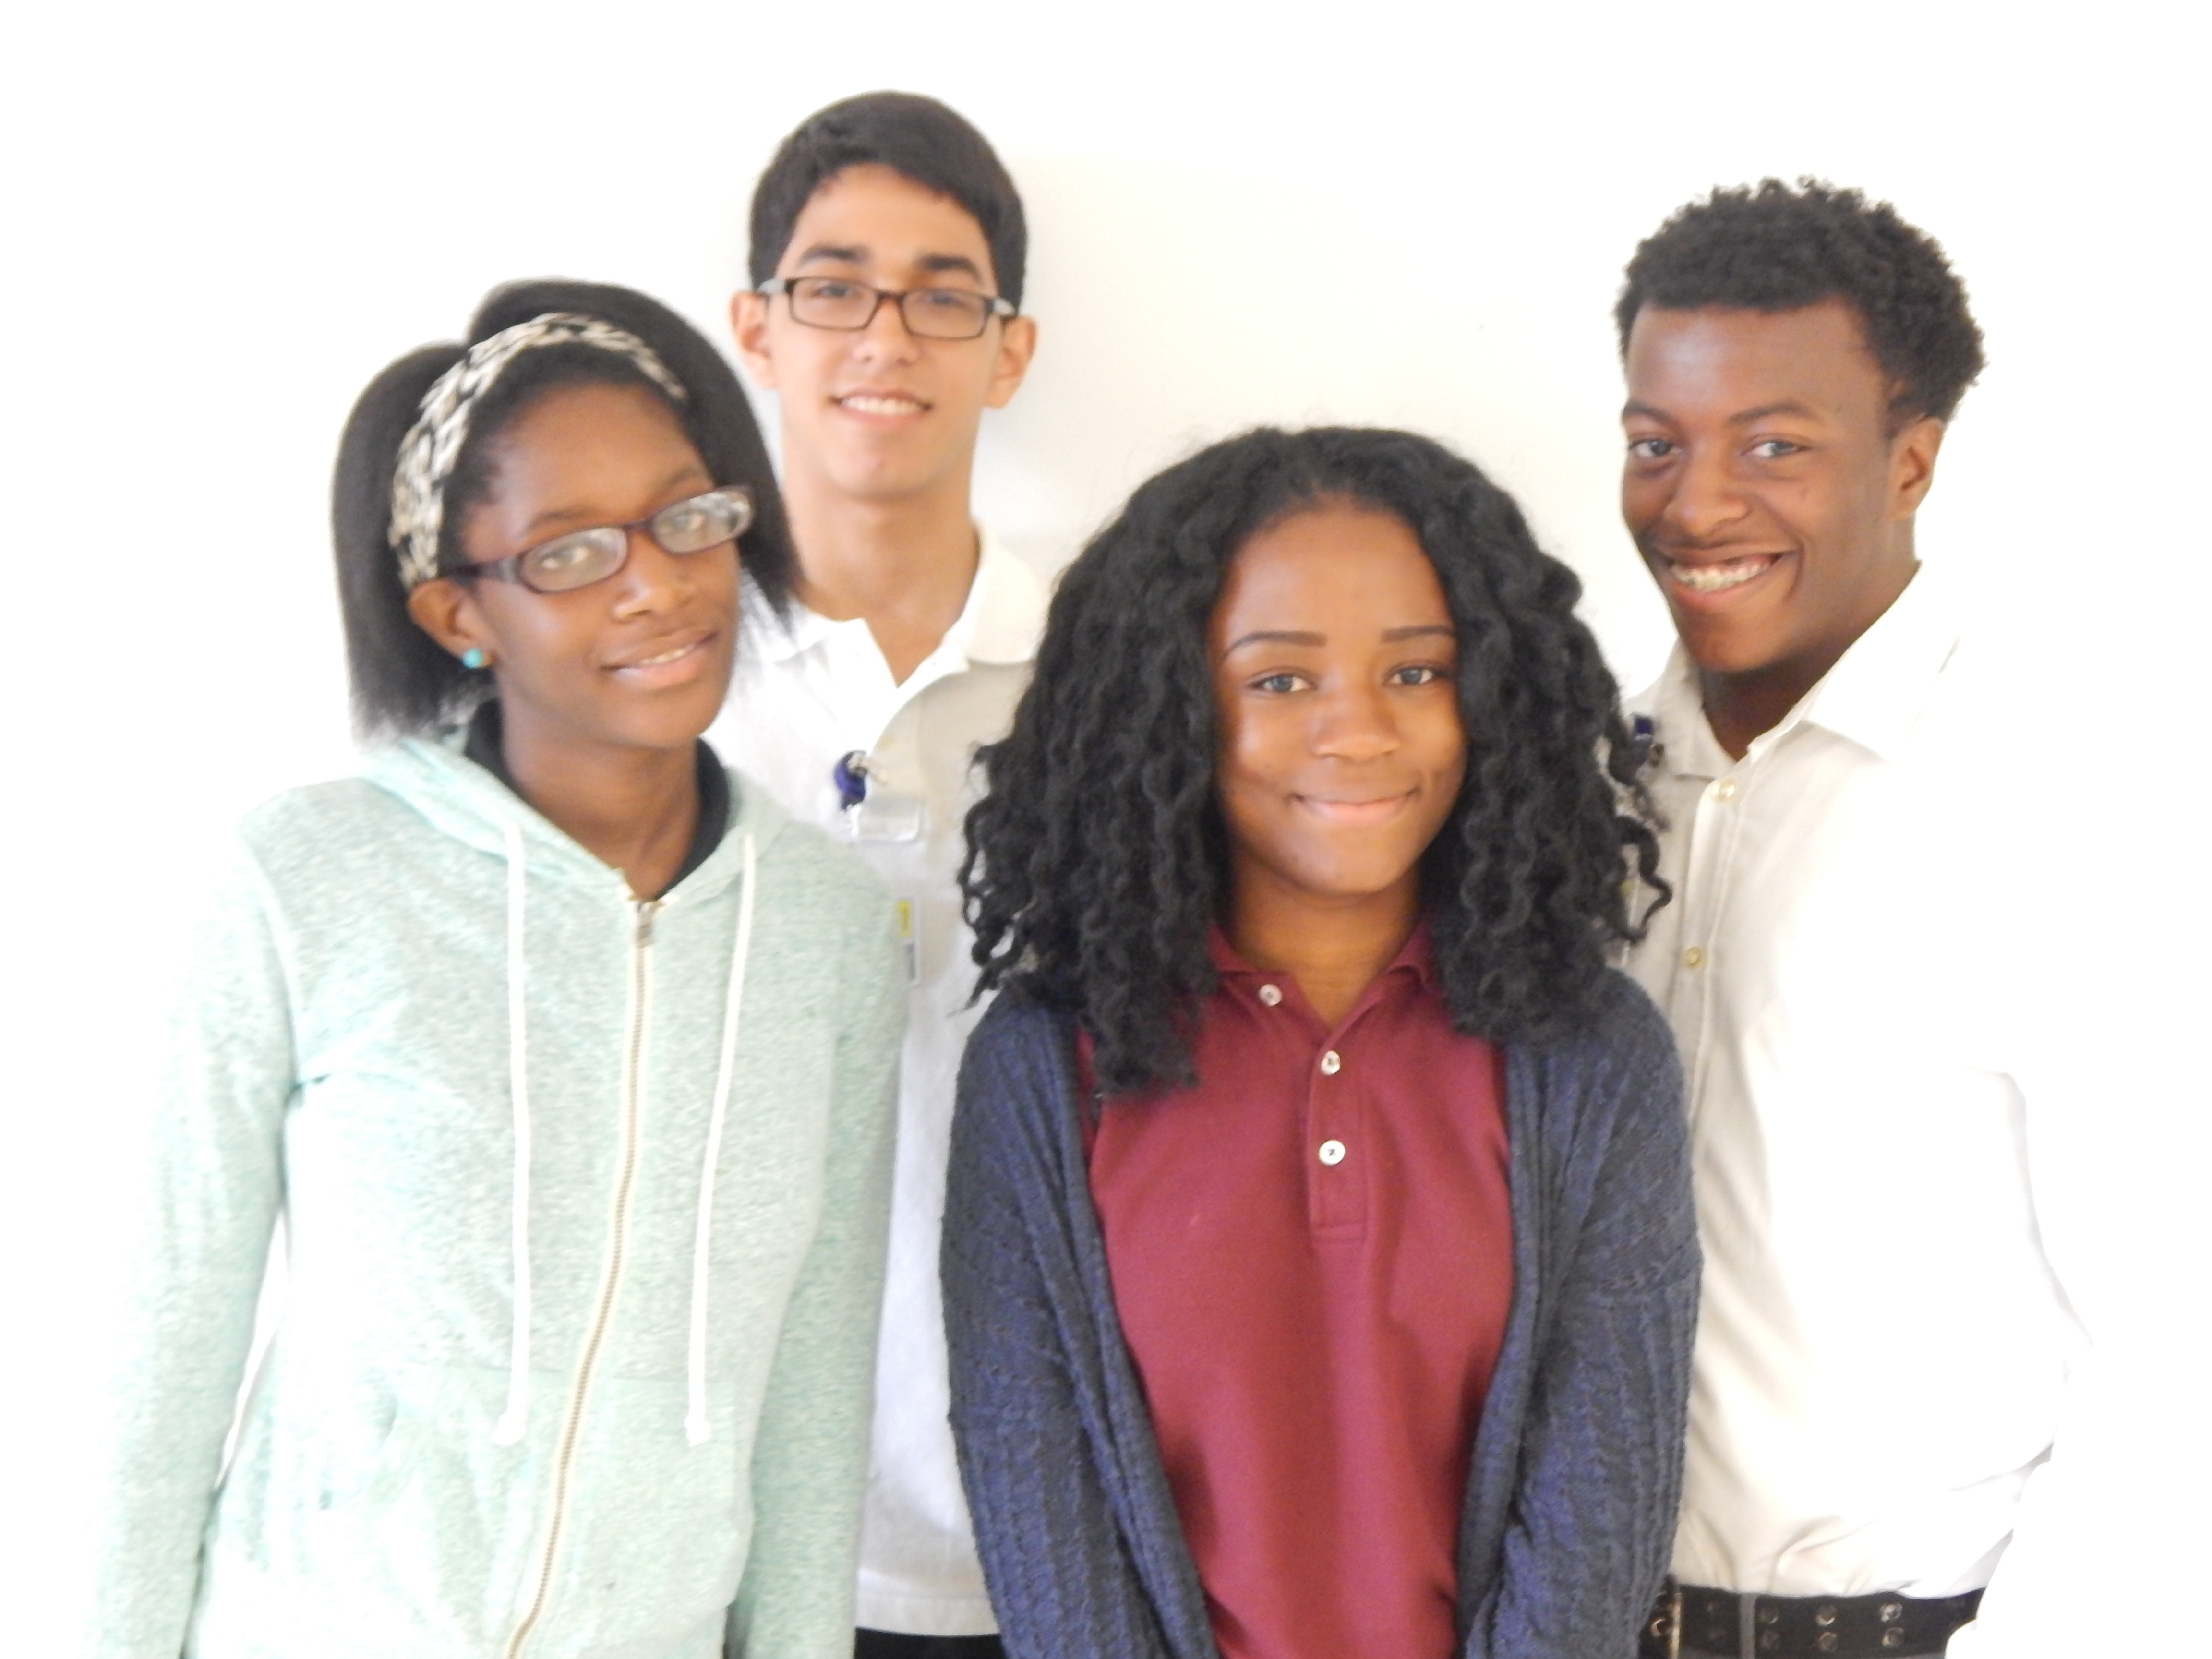 University Hospital Welcomes Newark Teens - New Community Corporation